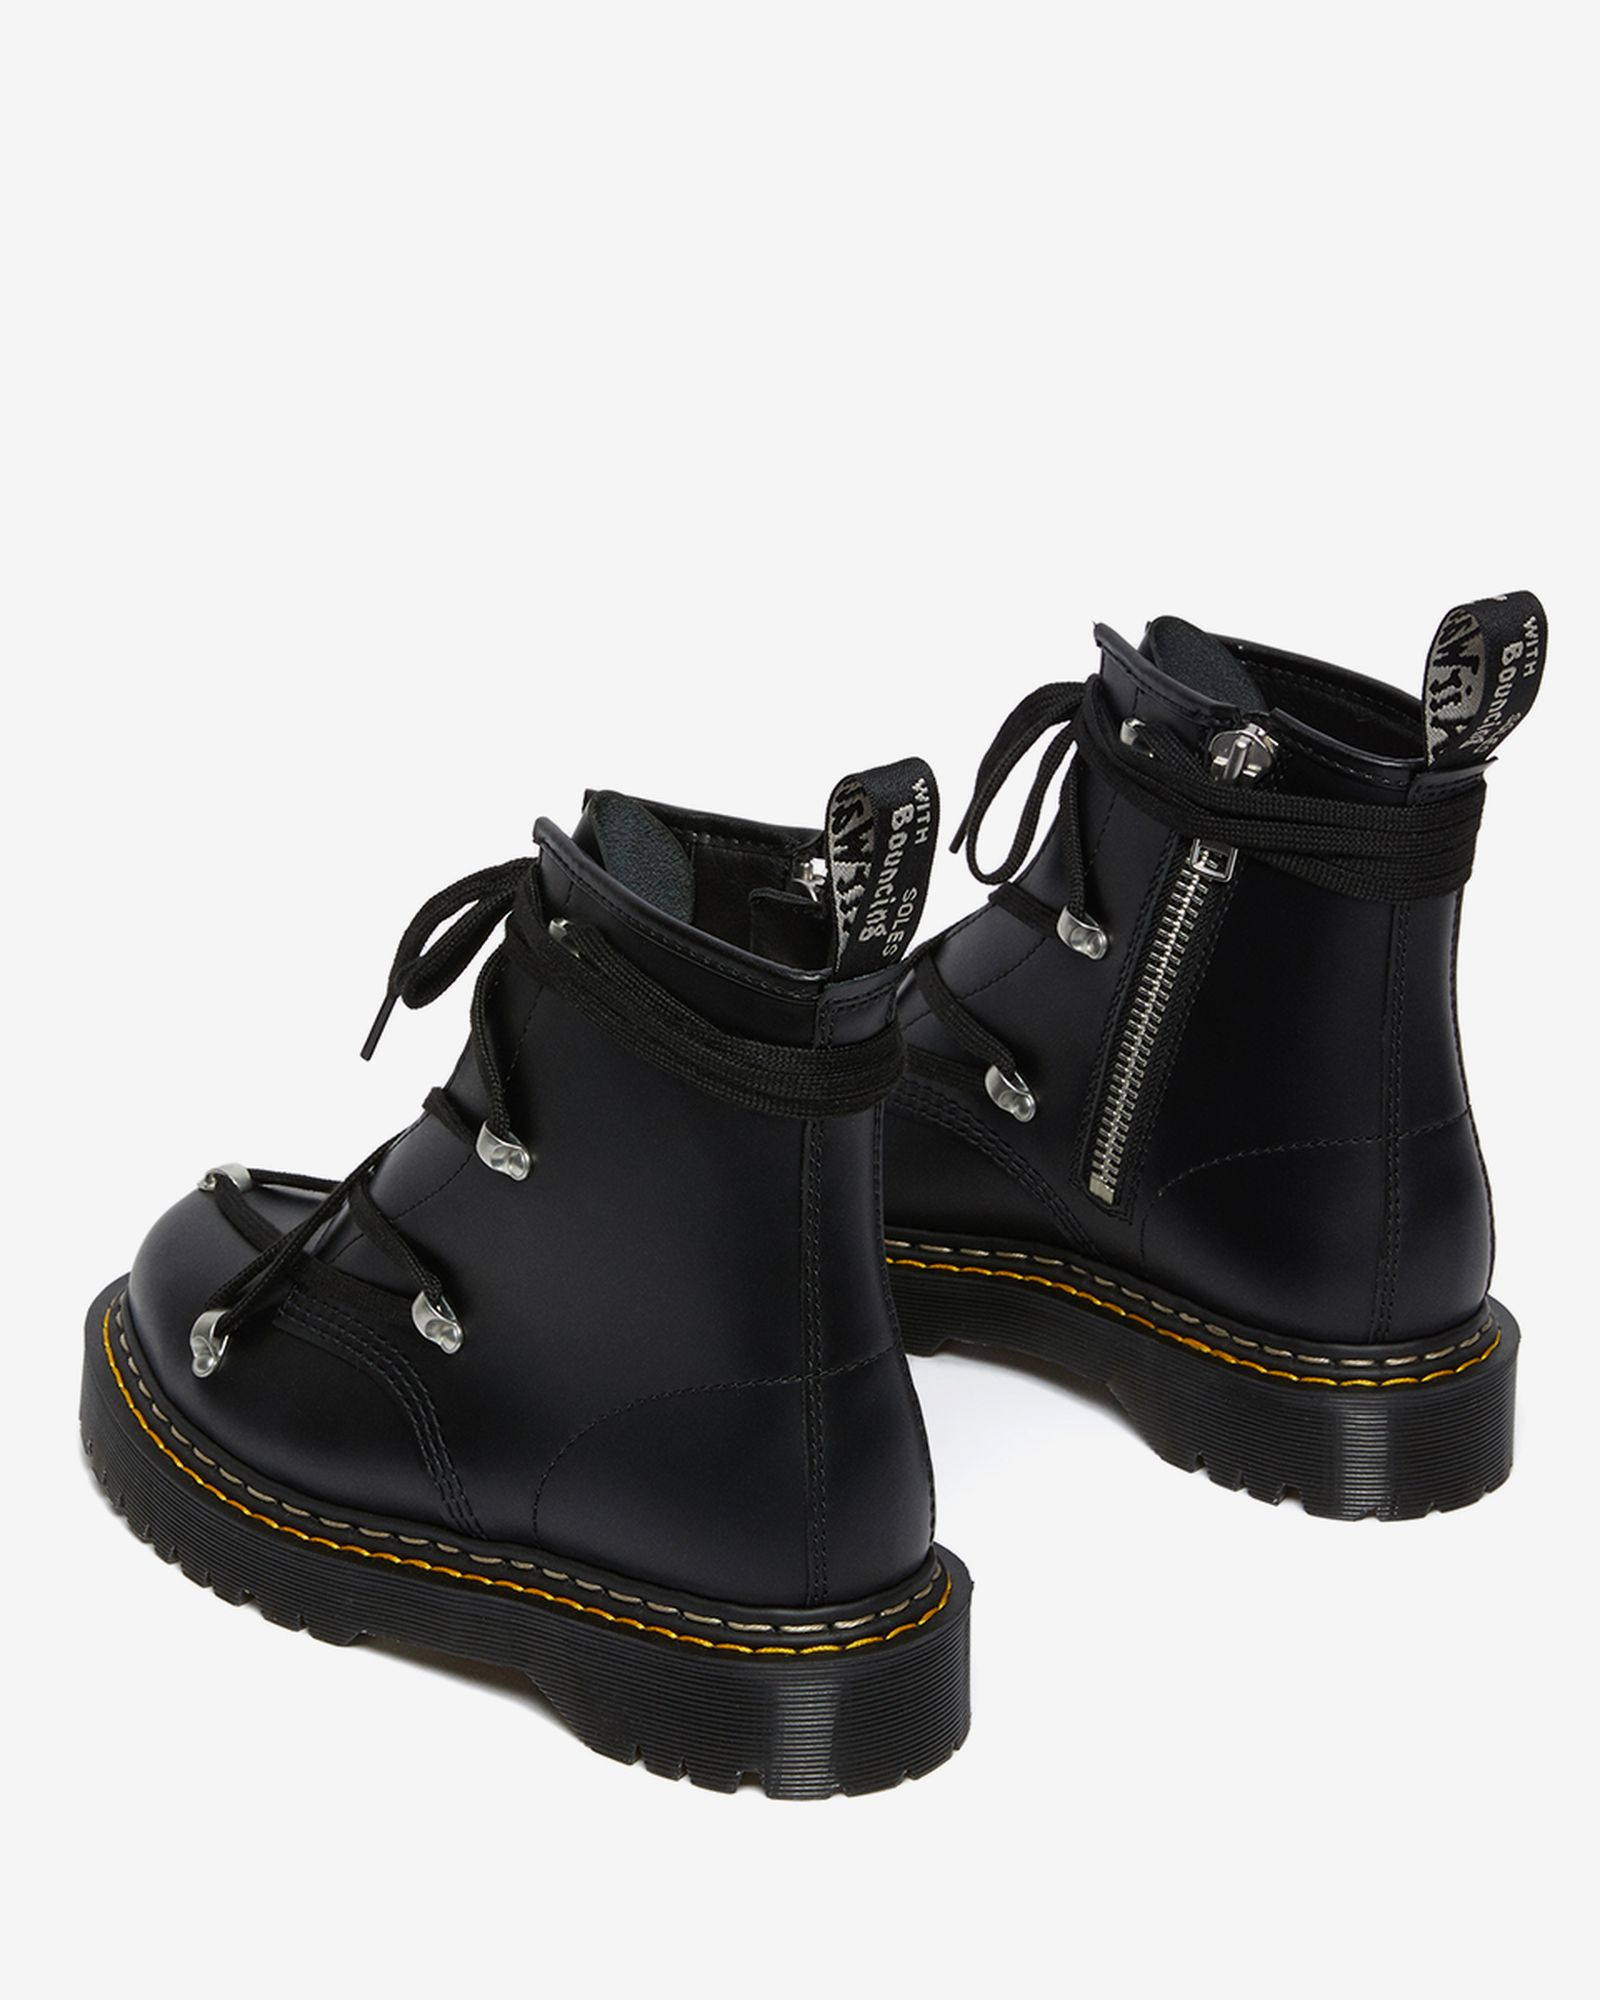 rick-owens-dr-martens-1460-bex-release-date-price-05